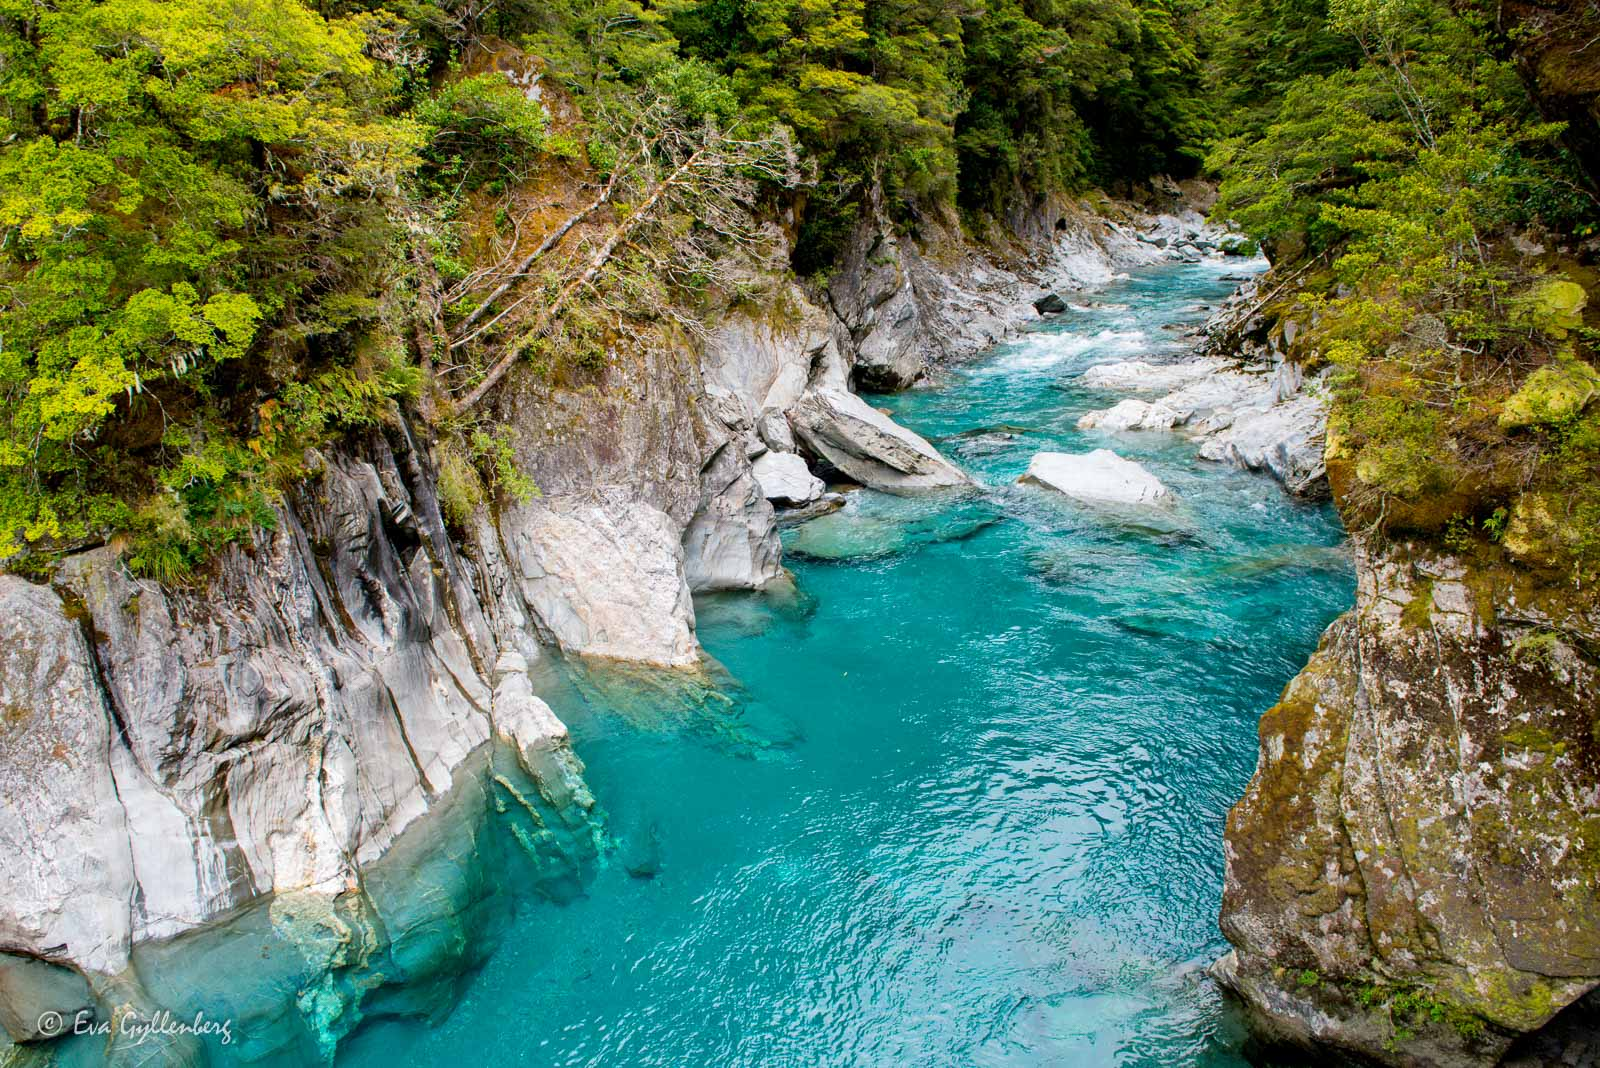 Blue pools magiska vatten i Mount Aspiring